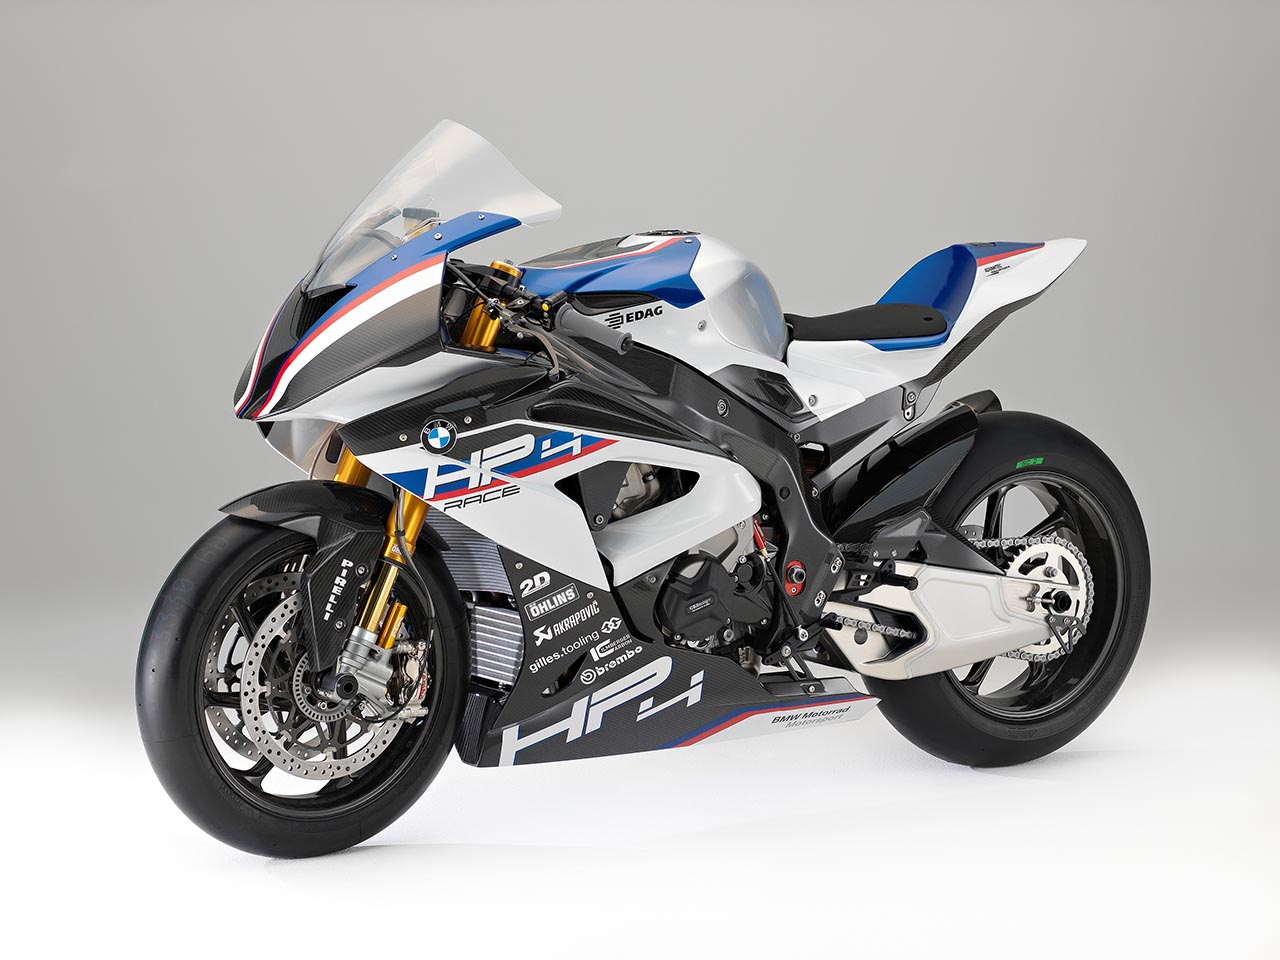 Bmw Hp4 Race Ready To Rock Its First Race At Ulster Gp Bikesrepublic